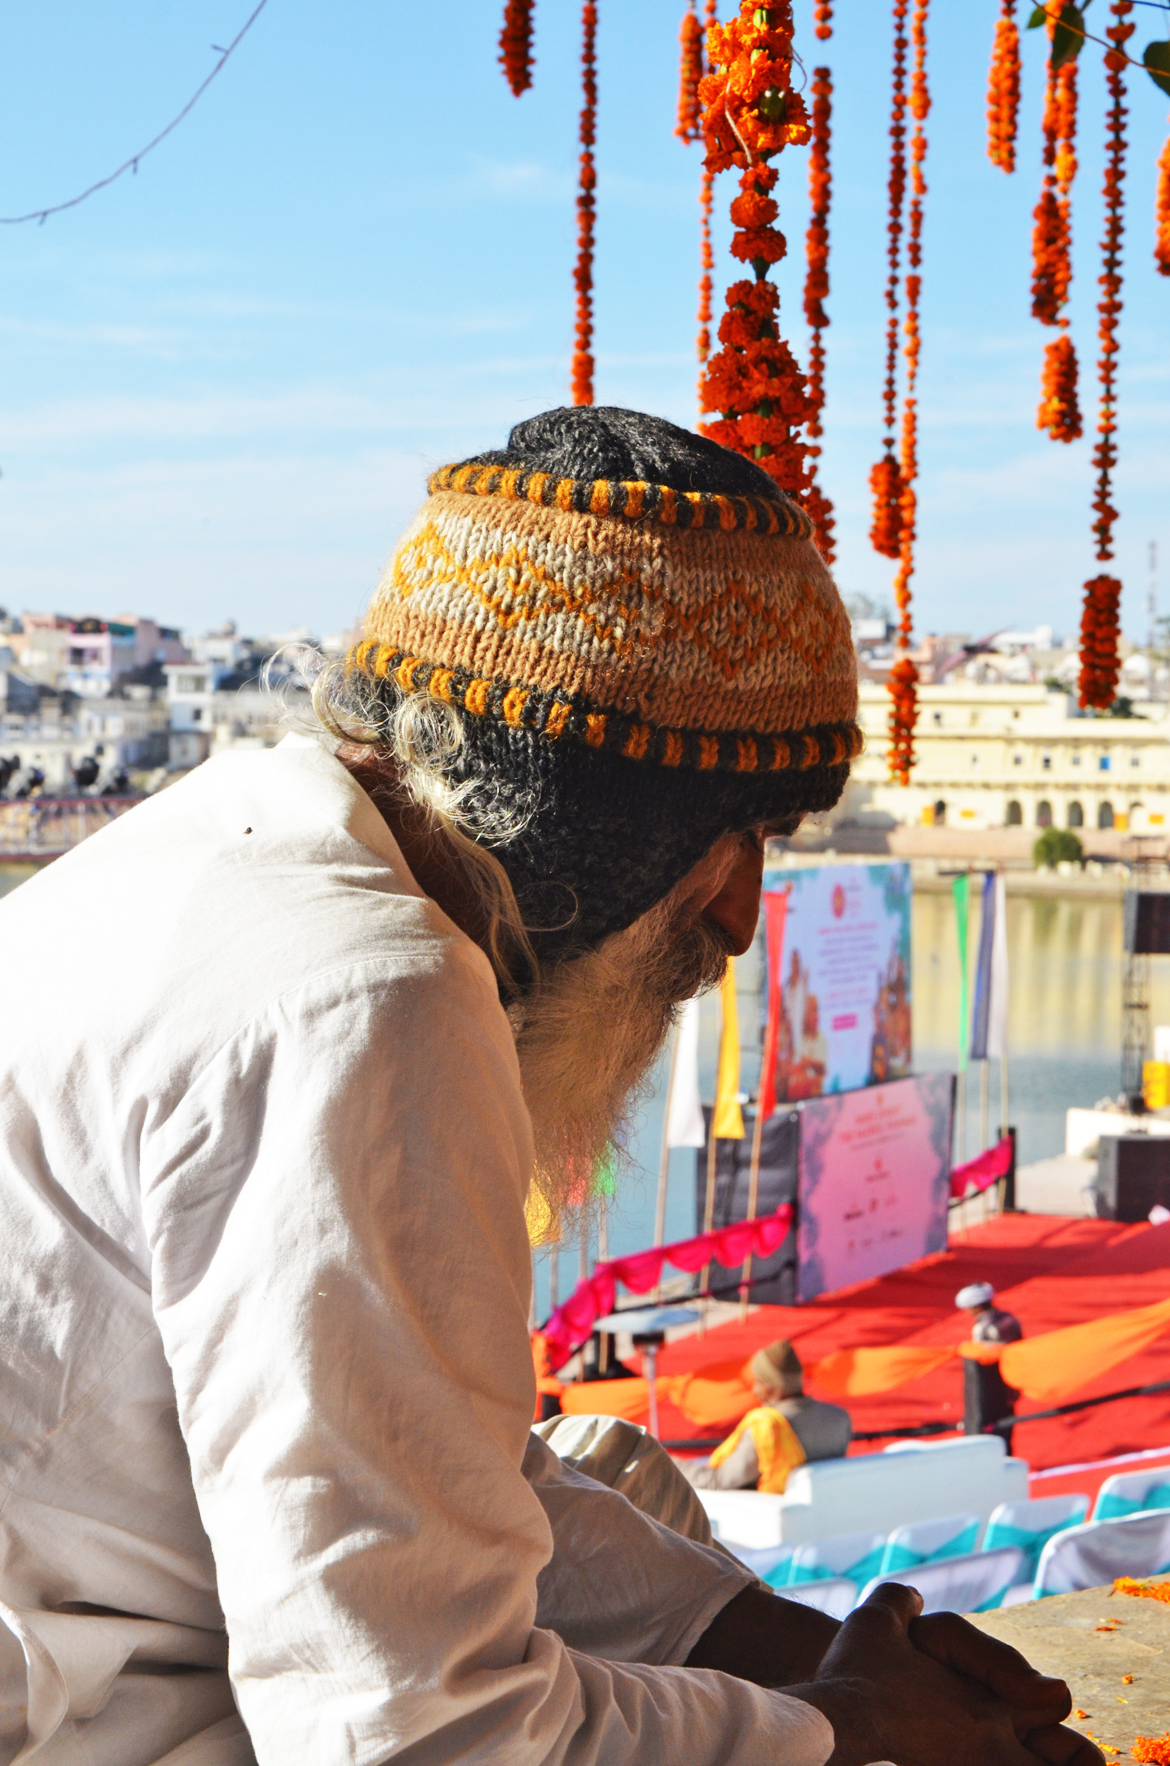 Come for the music or spiritual experiences, the ethereal charm of Pushkar is unforgettable.